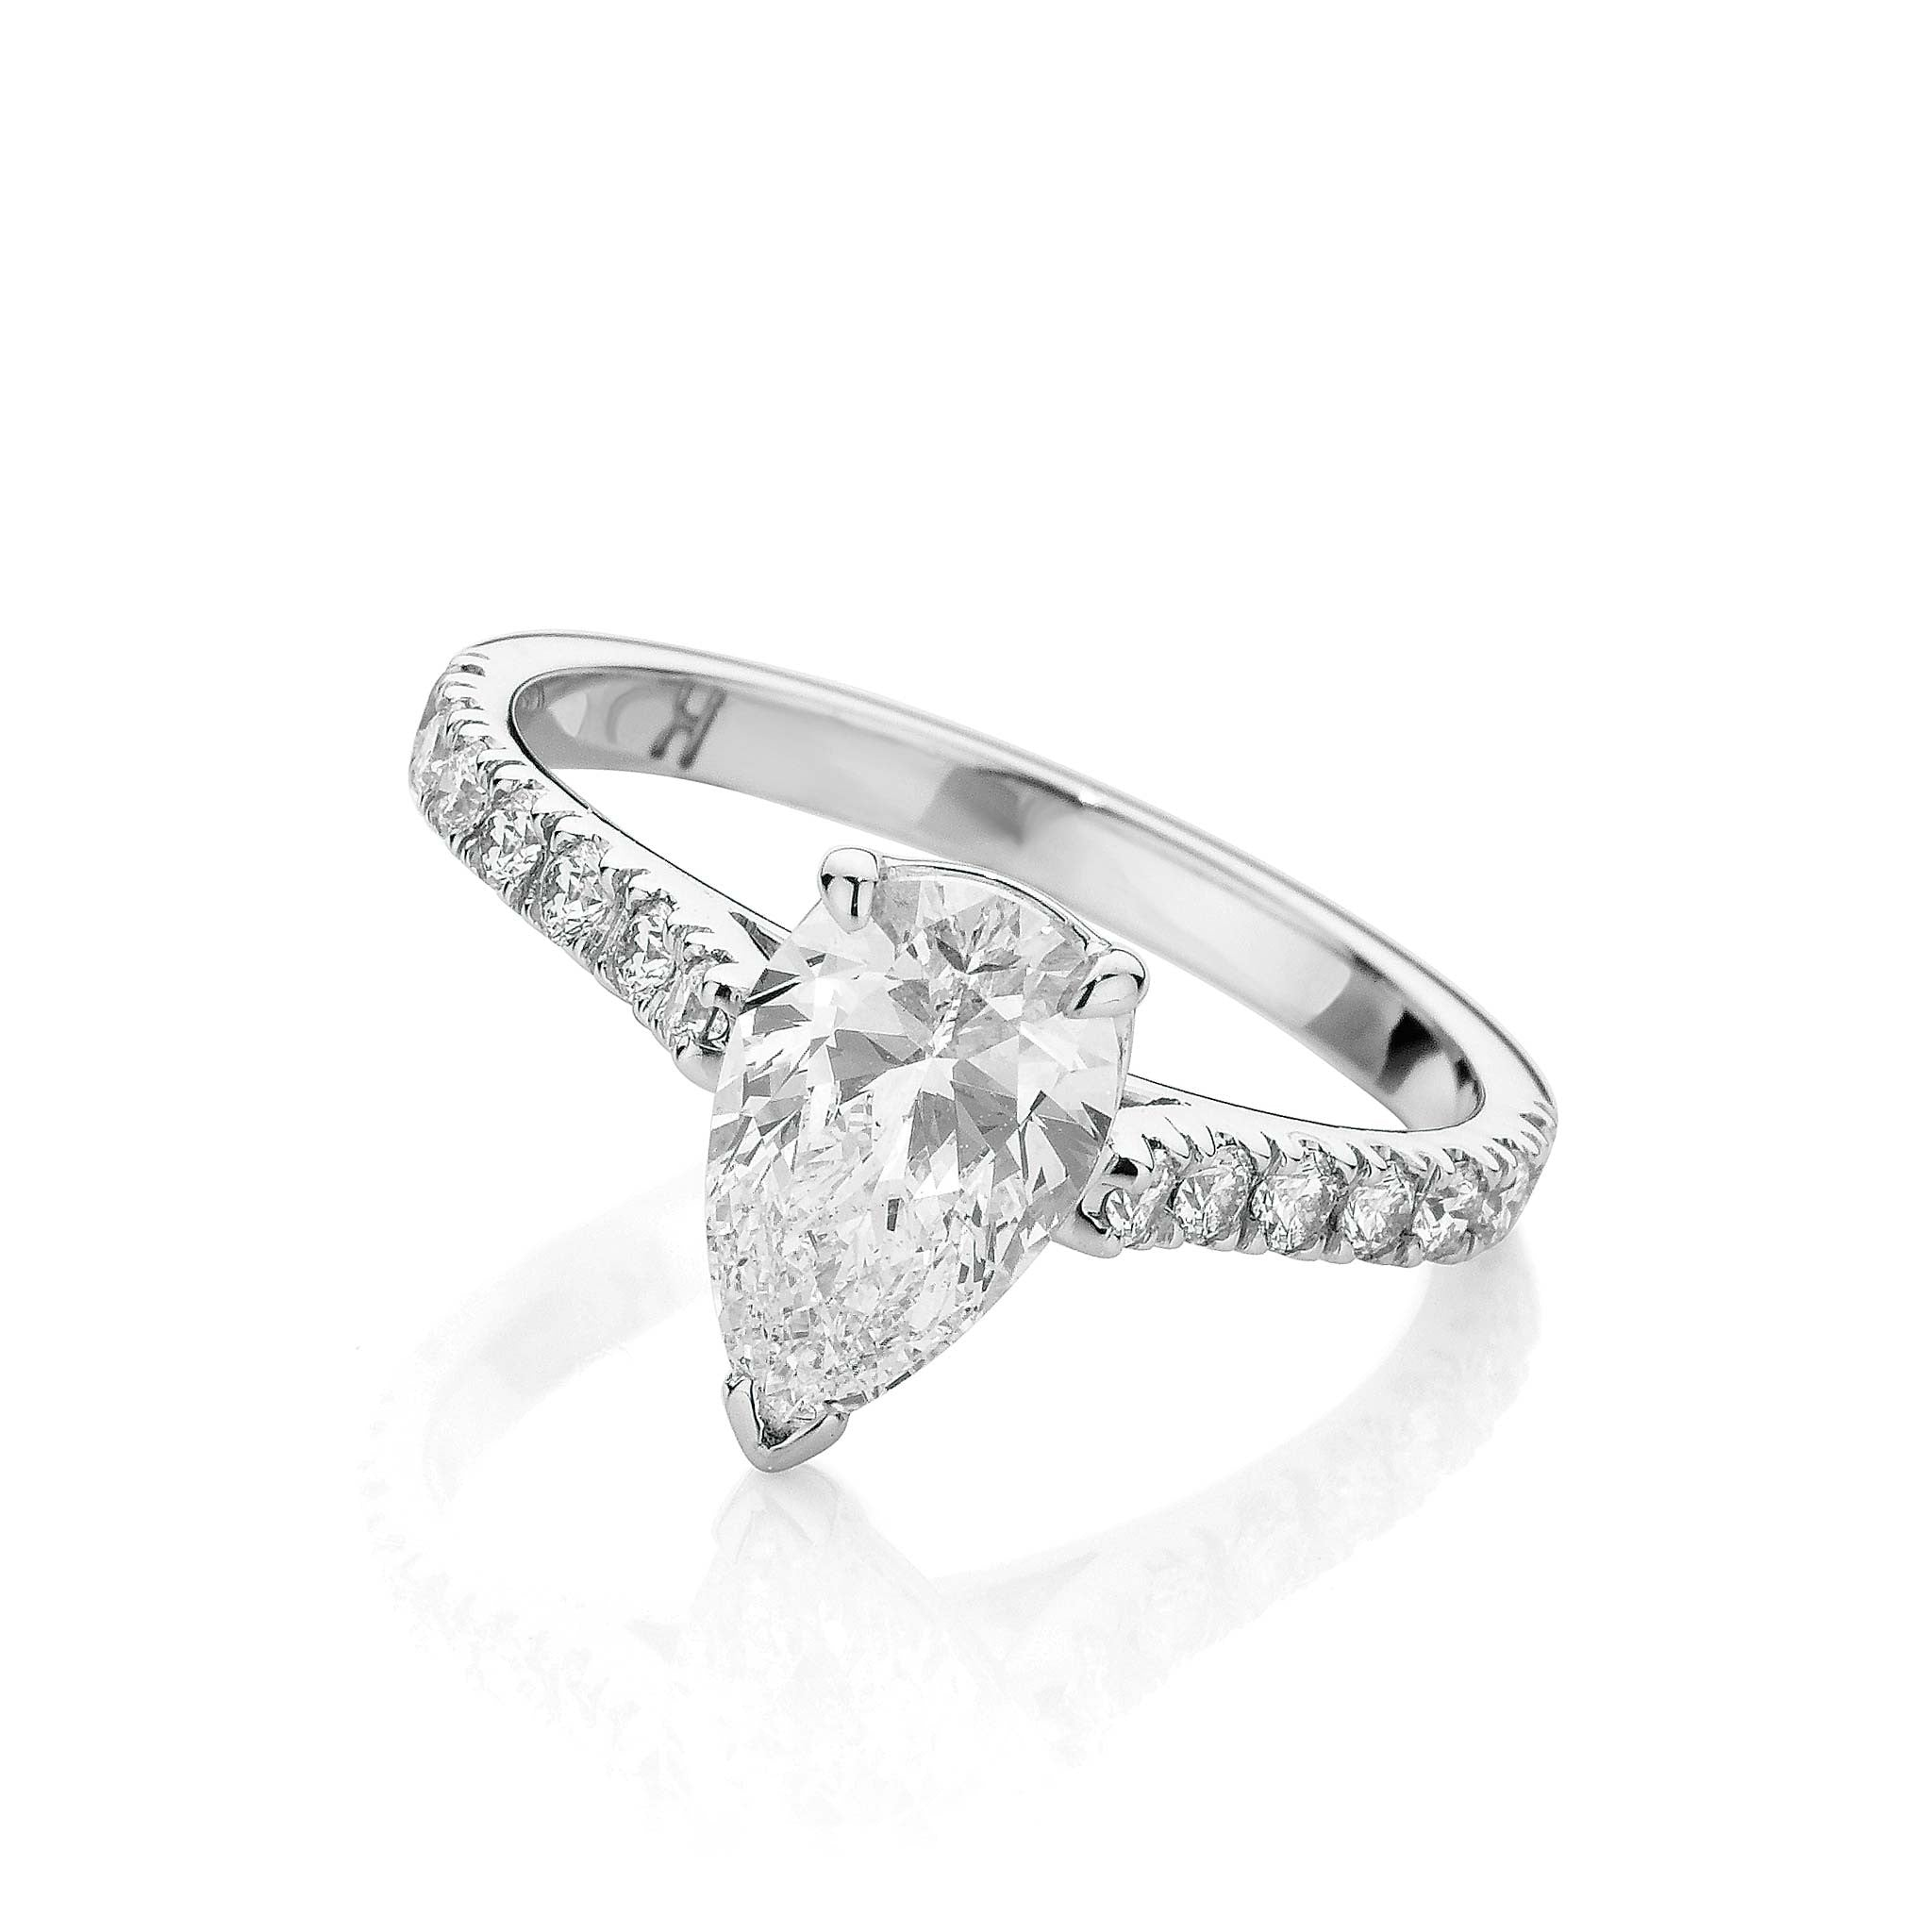 Classic Pear Cut Diamond Ring